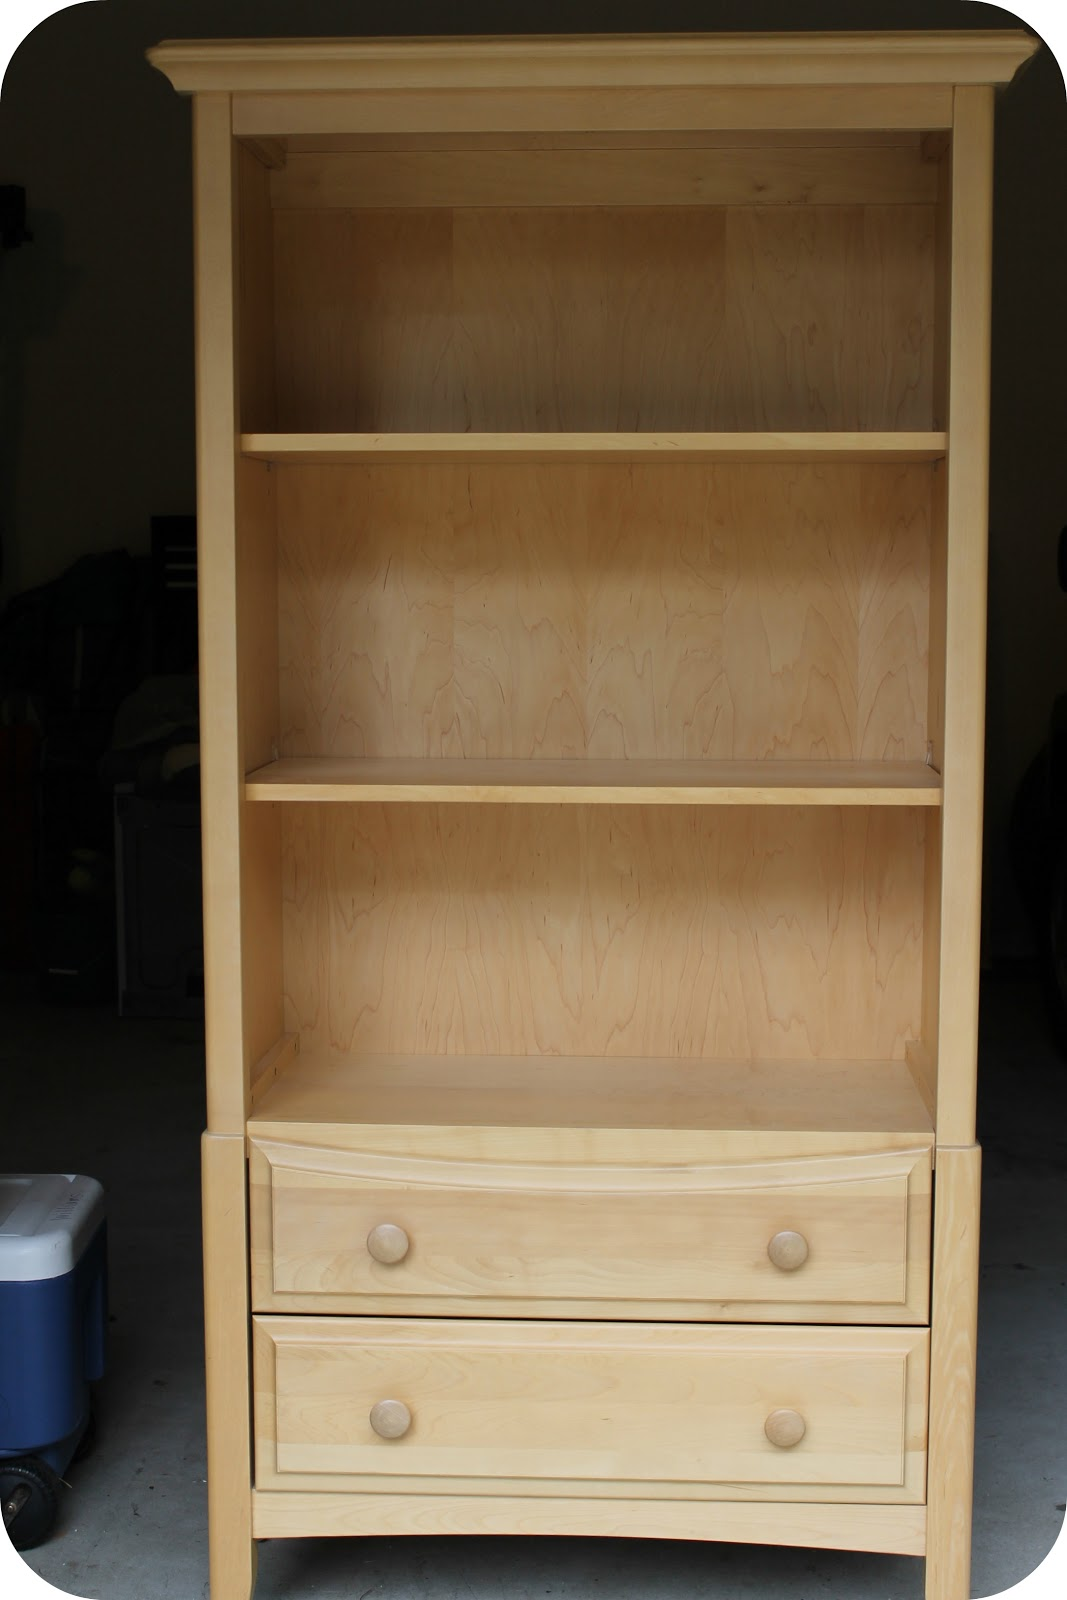 Marvelous photograph of Painting Shelves Ideas: Built in shelves for living room paint ideas  with #654727 color and 1067x1600 pixels